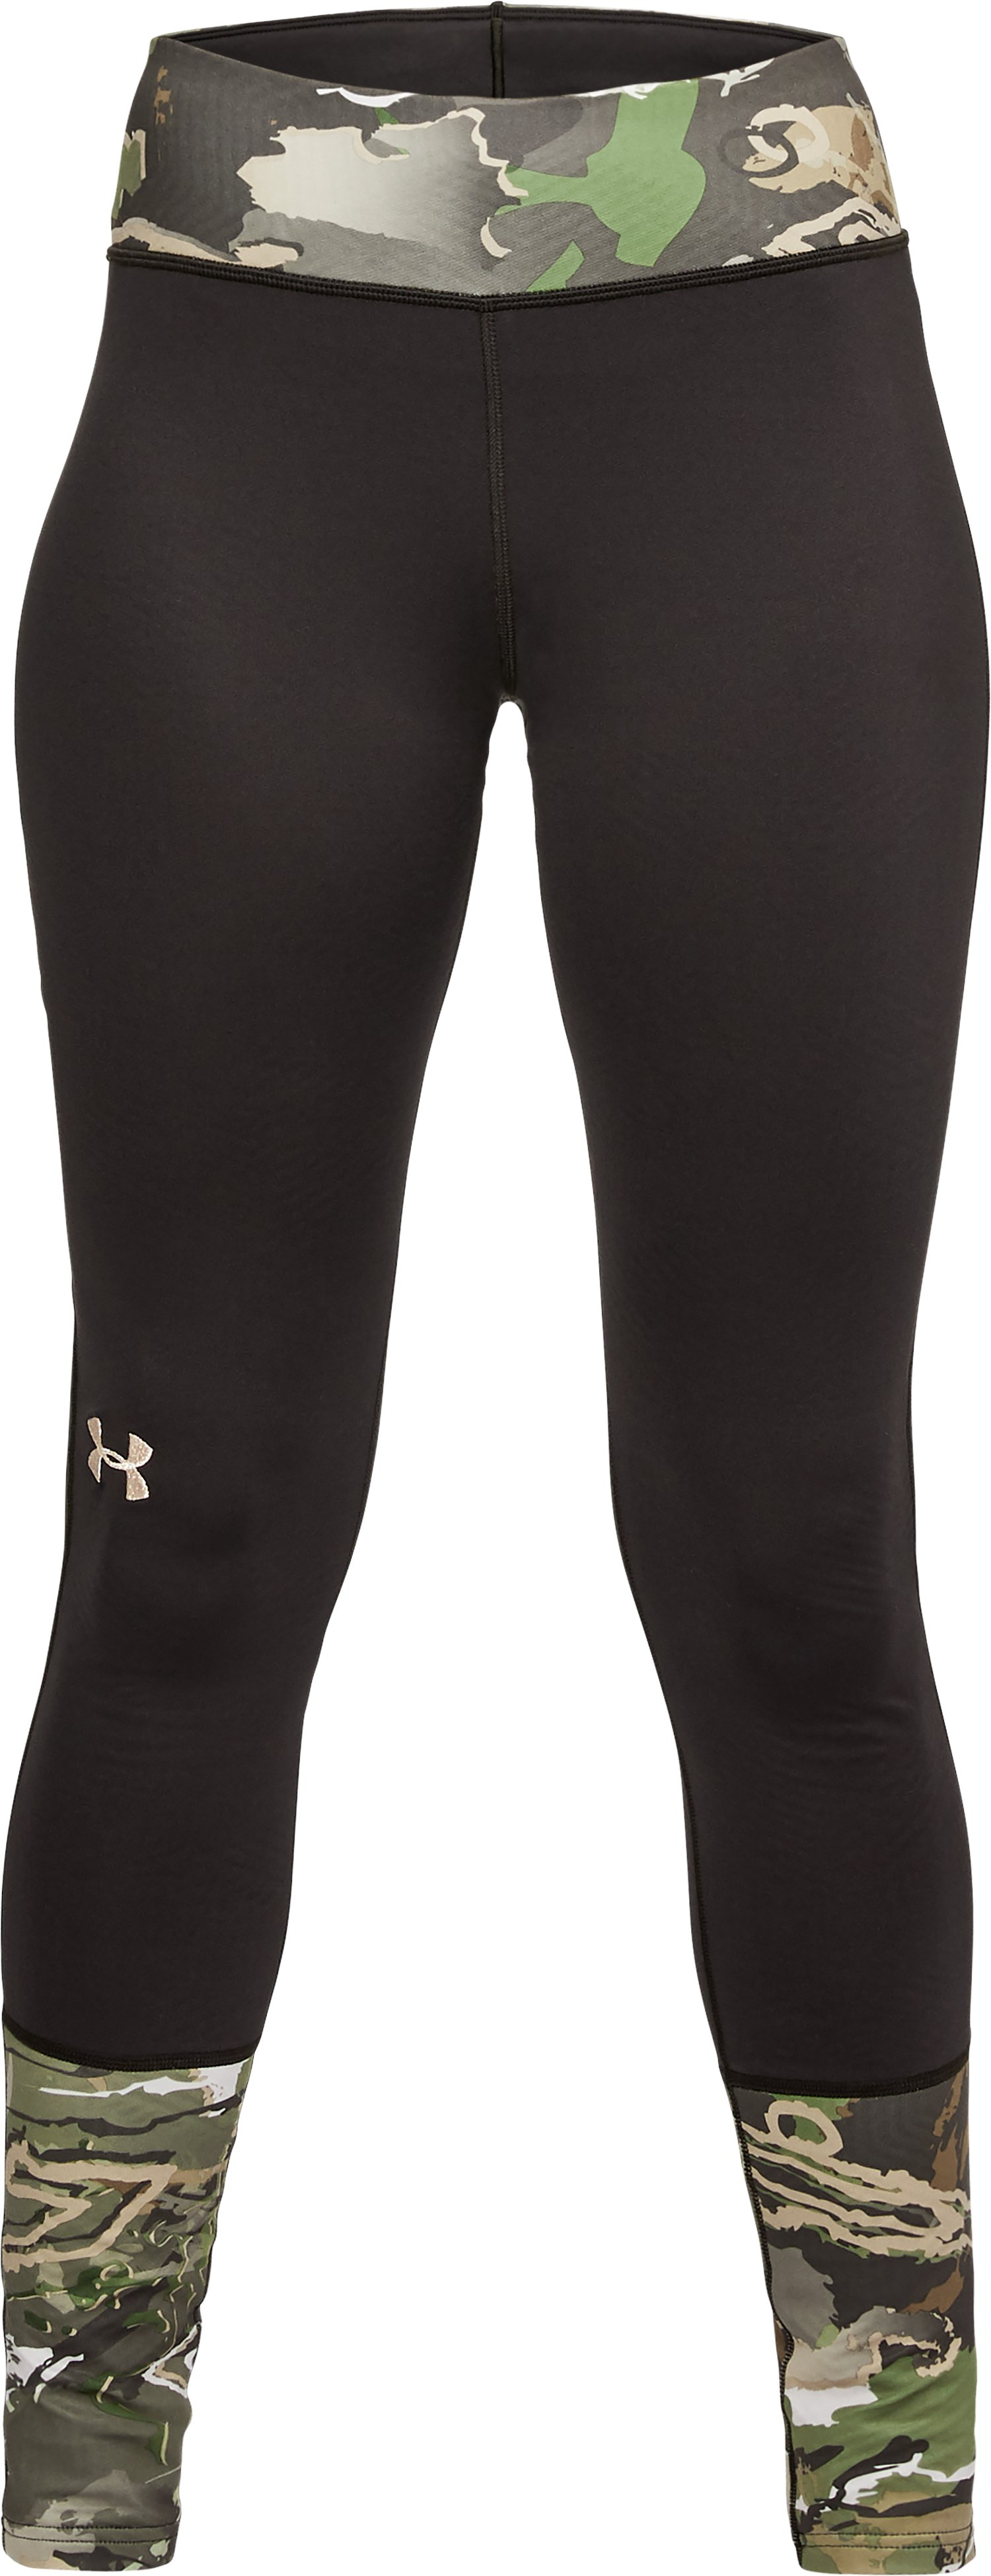 Women's UA Tevo Leggings, RIDGE REAPER® FOREST,